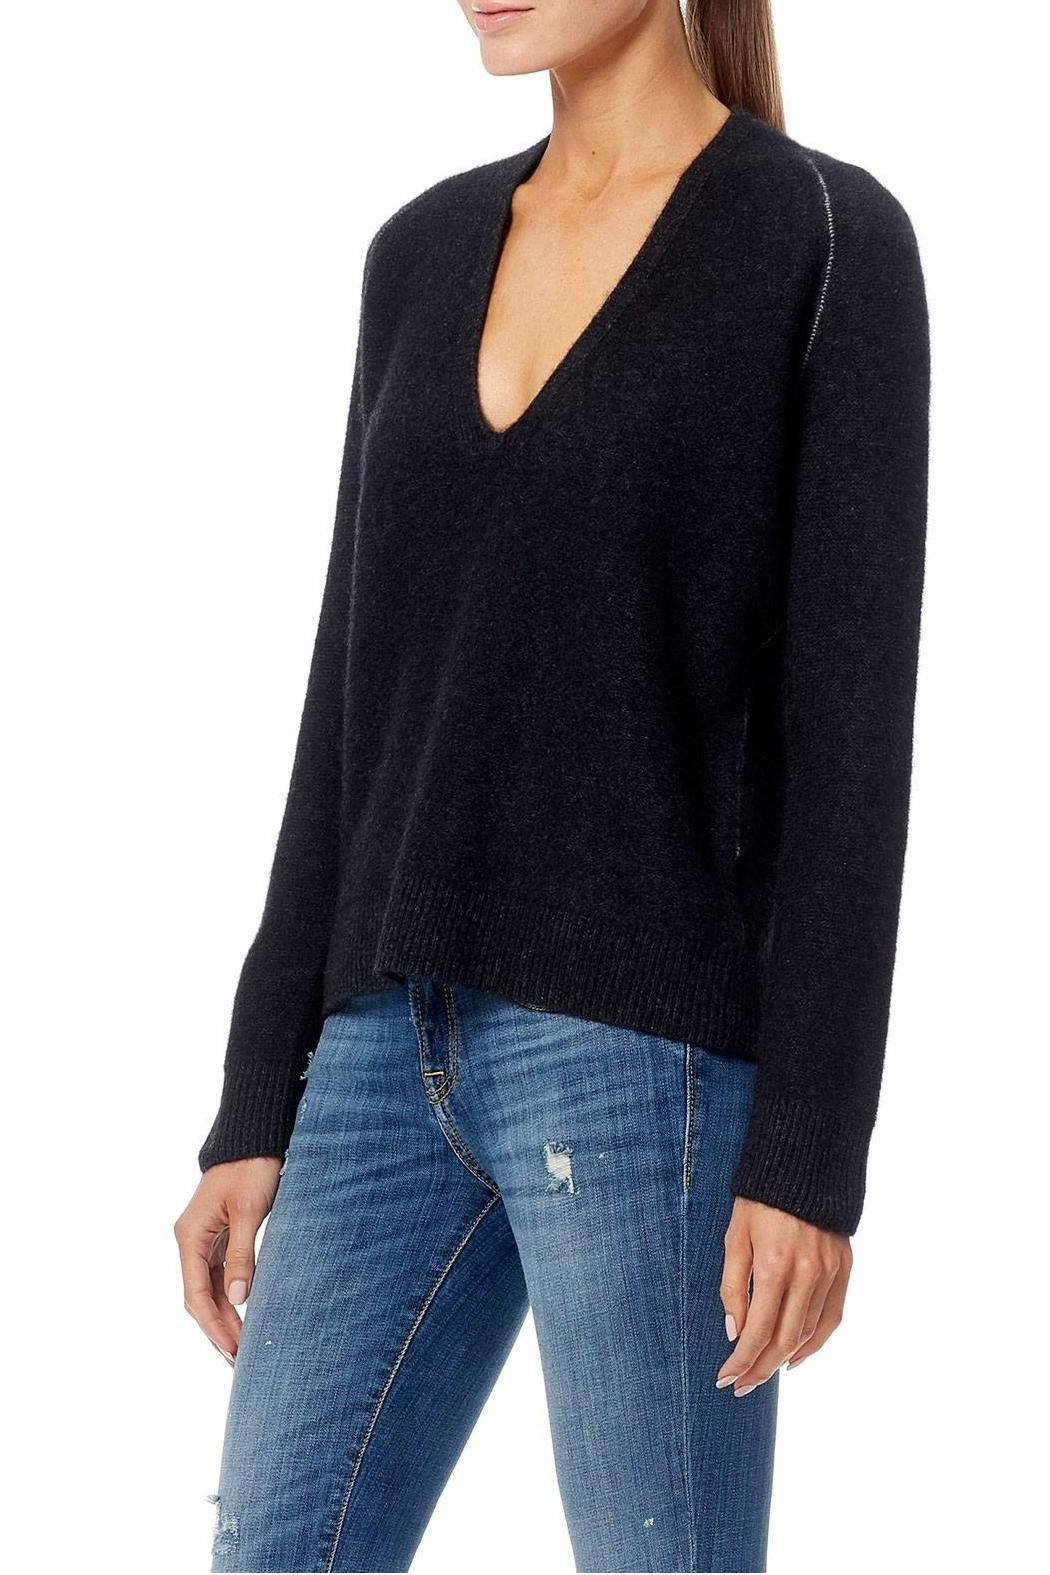 360 Cashmere Karleigh Sweater - Front Full Image